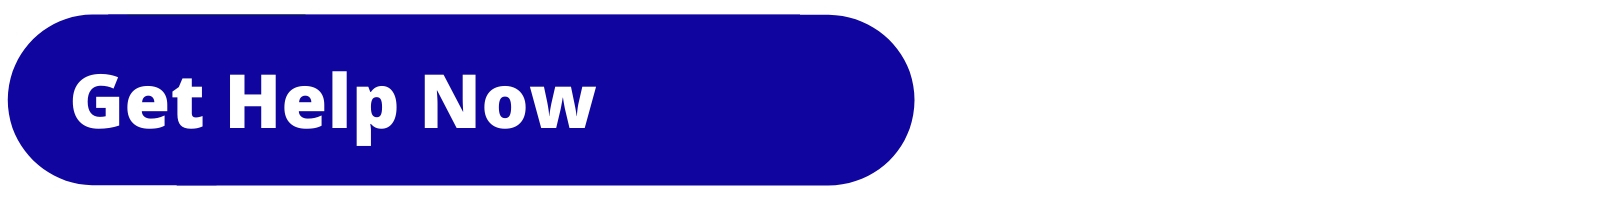 Get Help Now text on a blue oval shape